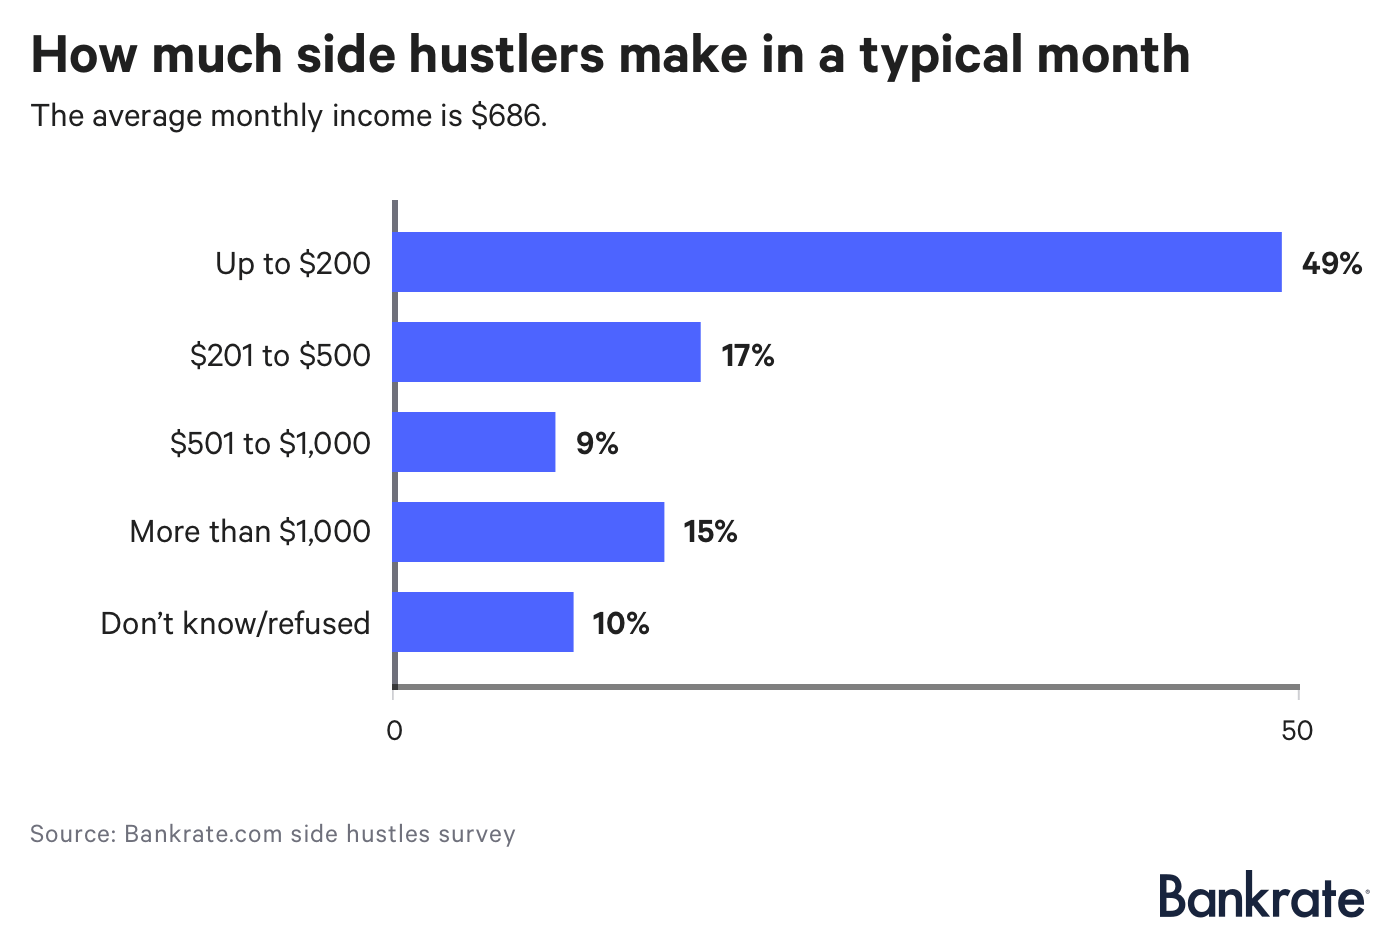 Chart: How much side hustlers make in a typical month